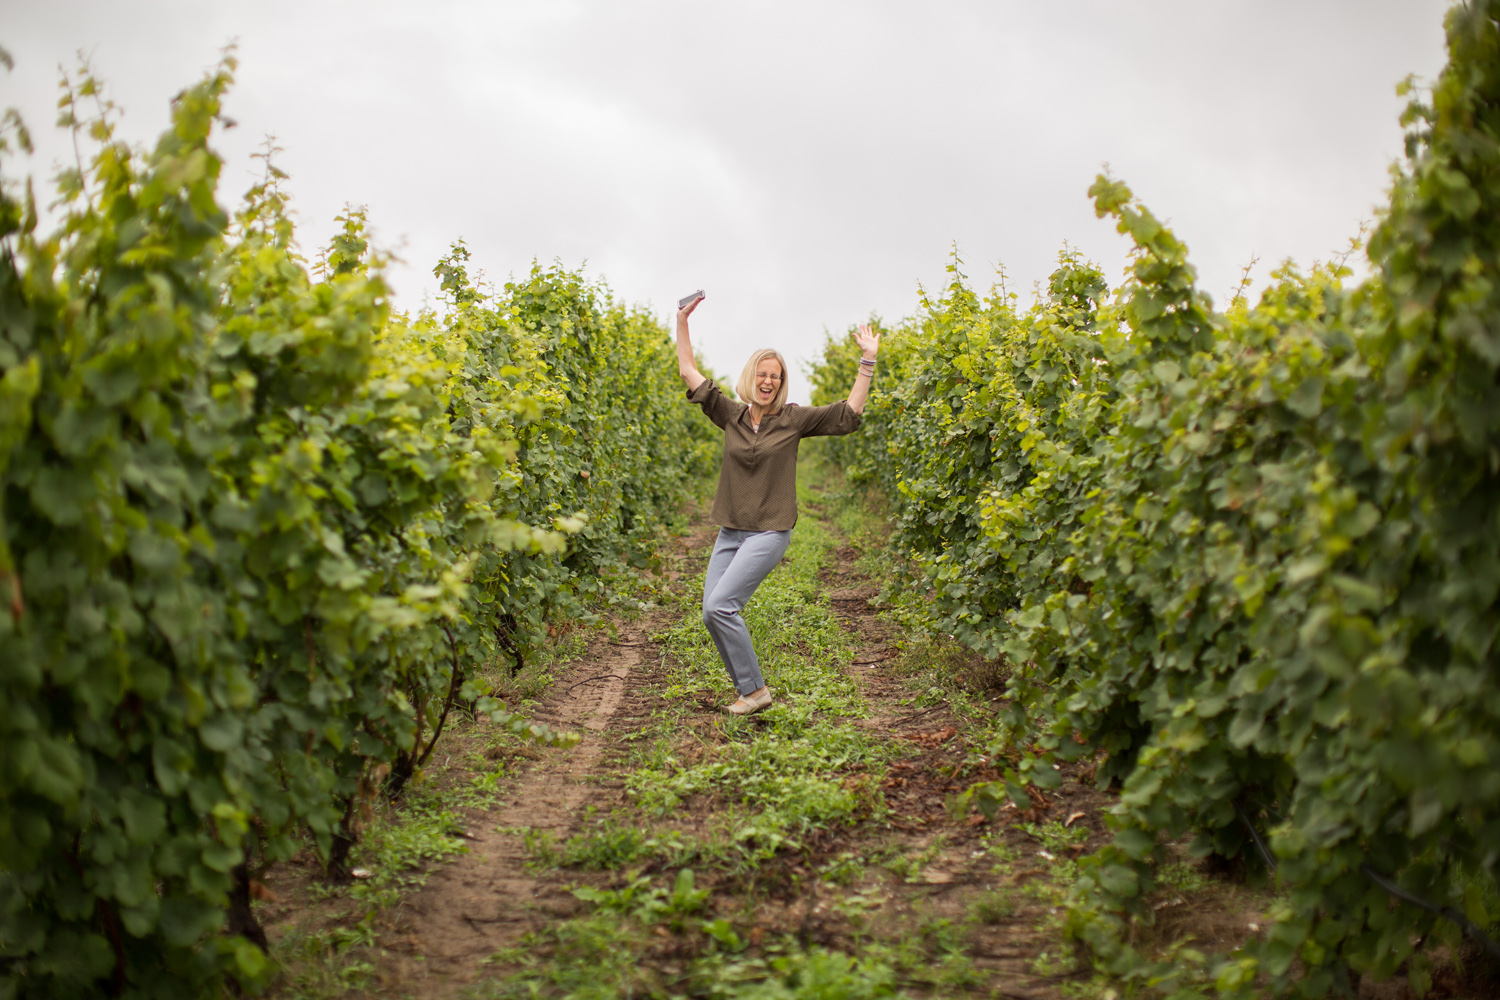 this sums up how we feel about shooting in a) a vineyard b) Traverse City